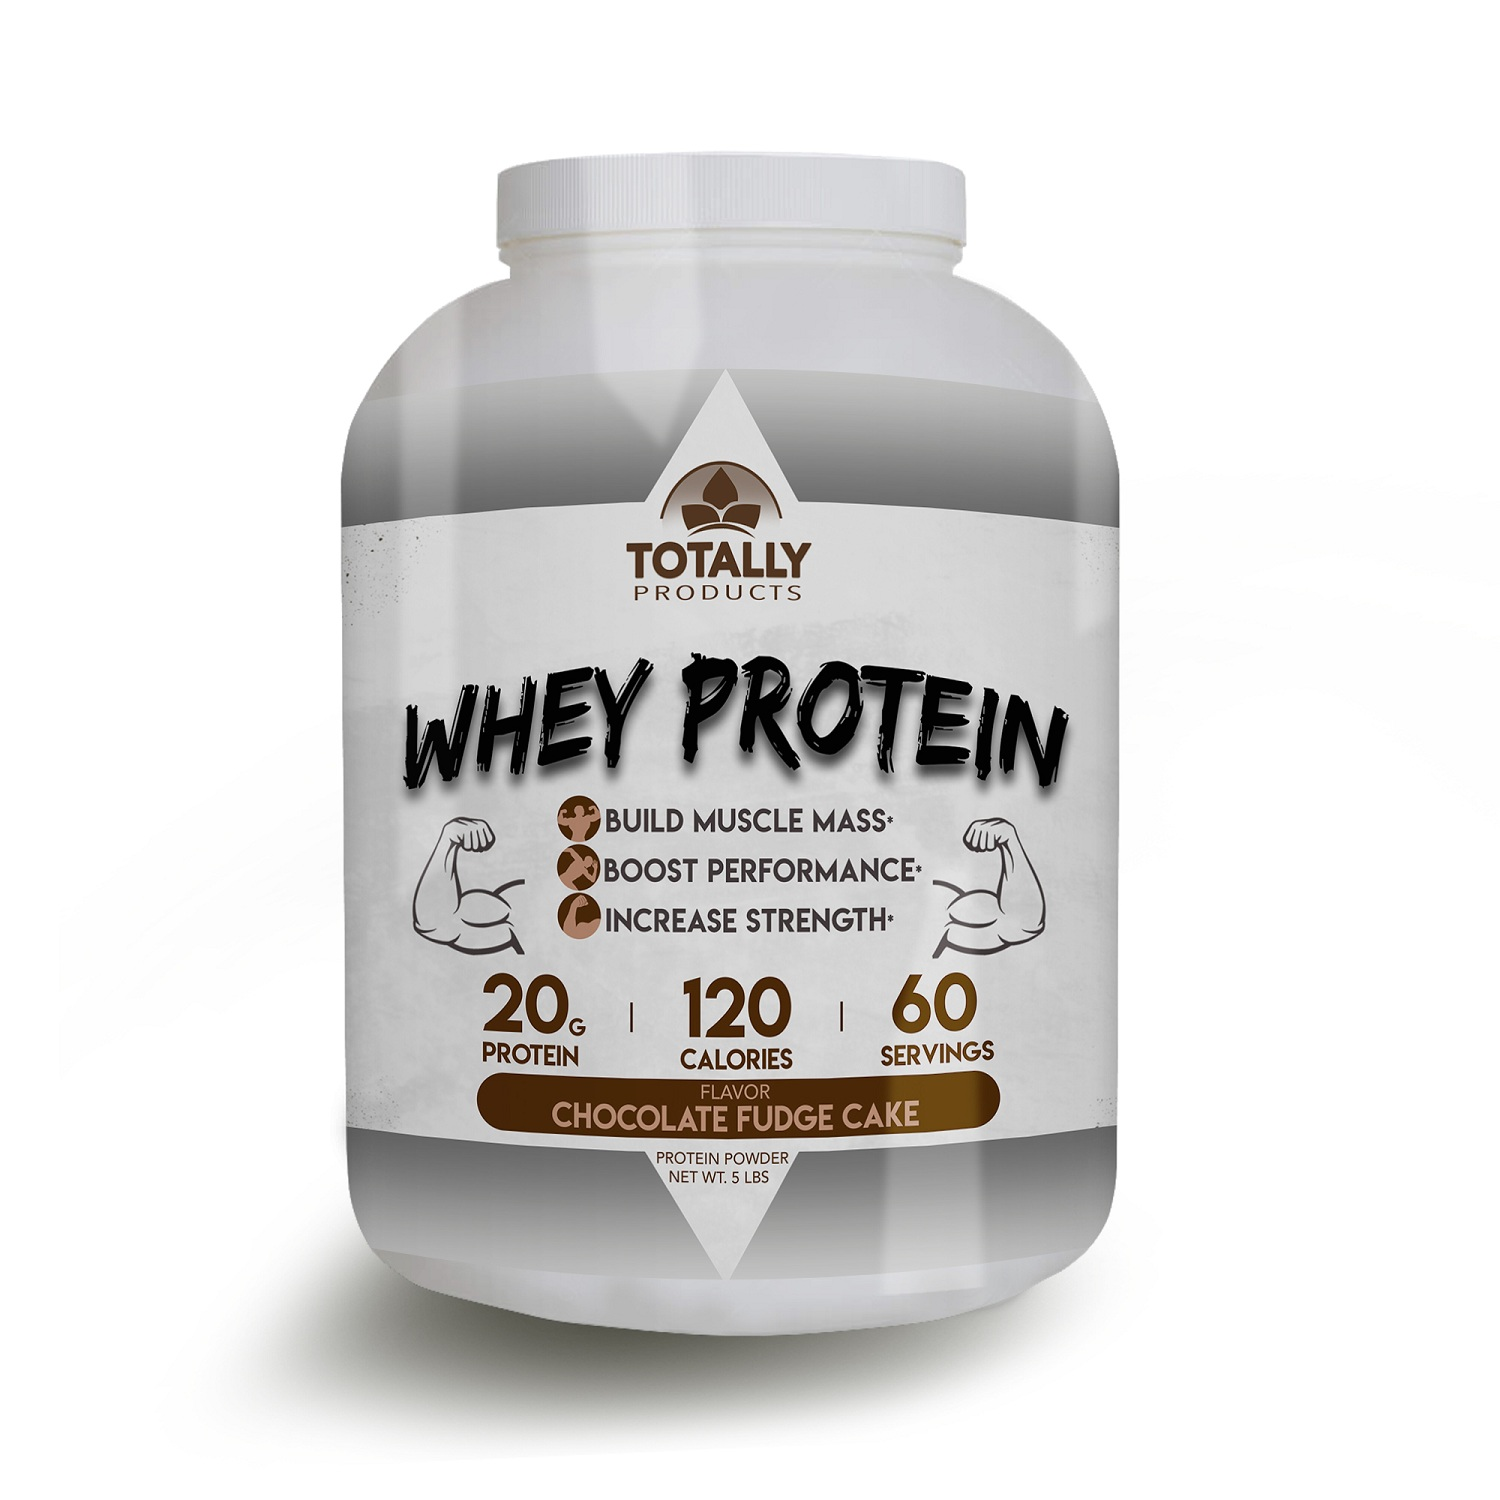 Totally Products Whey Protein Isolate for sale